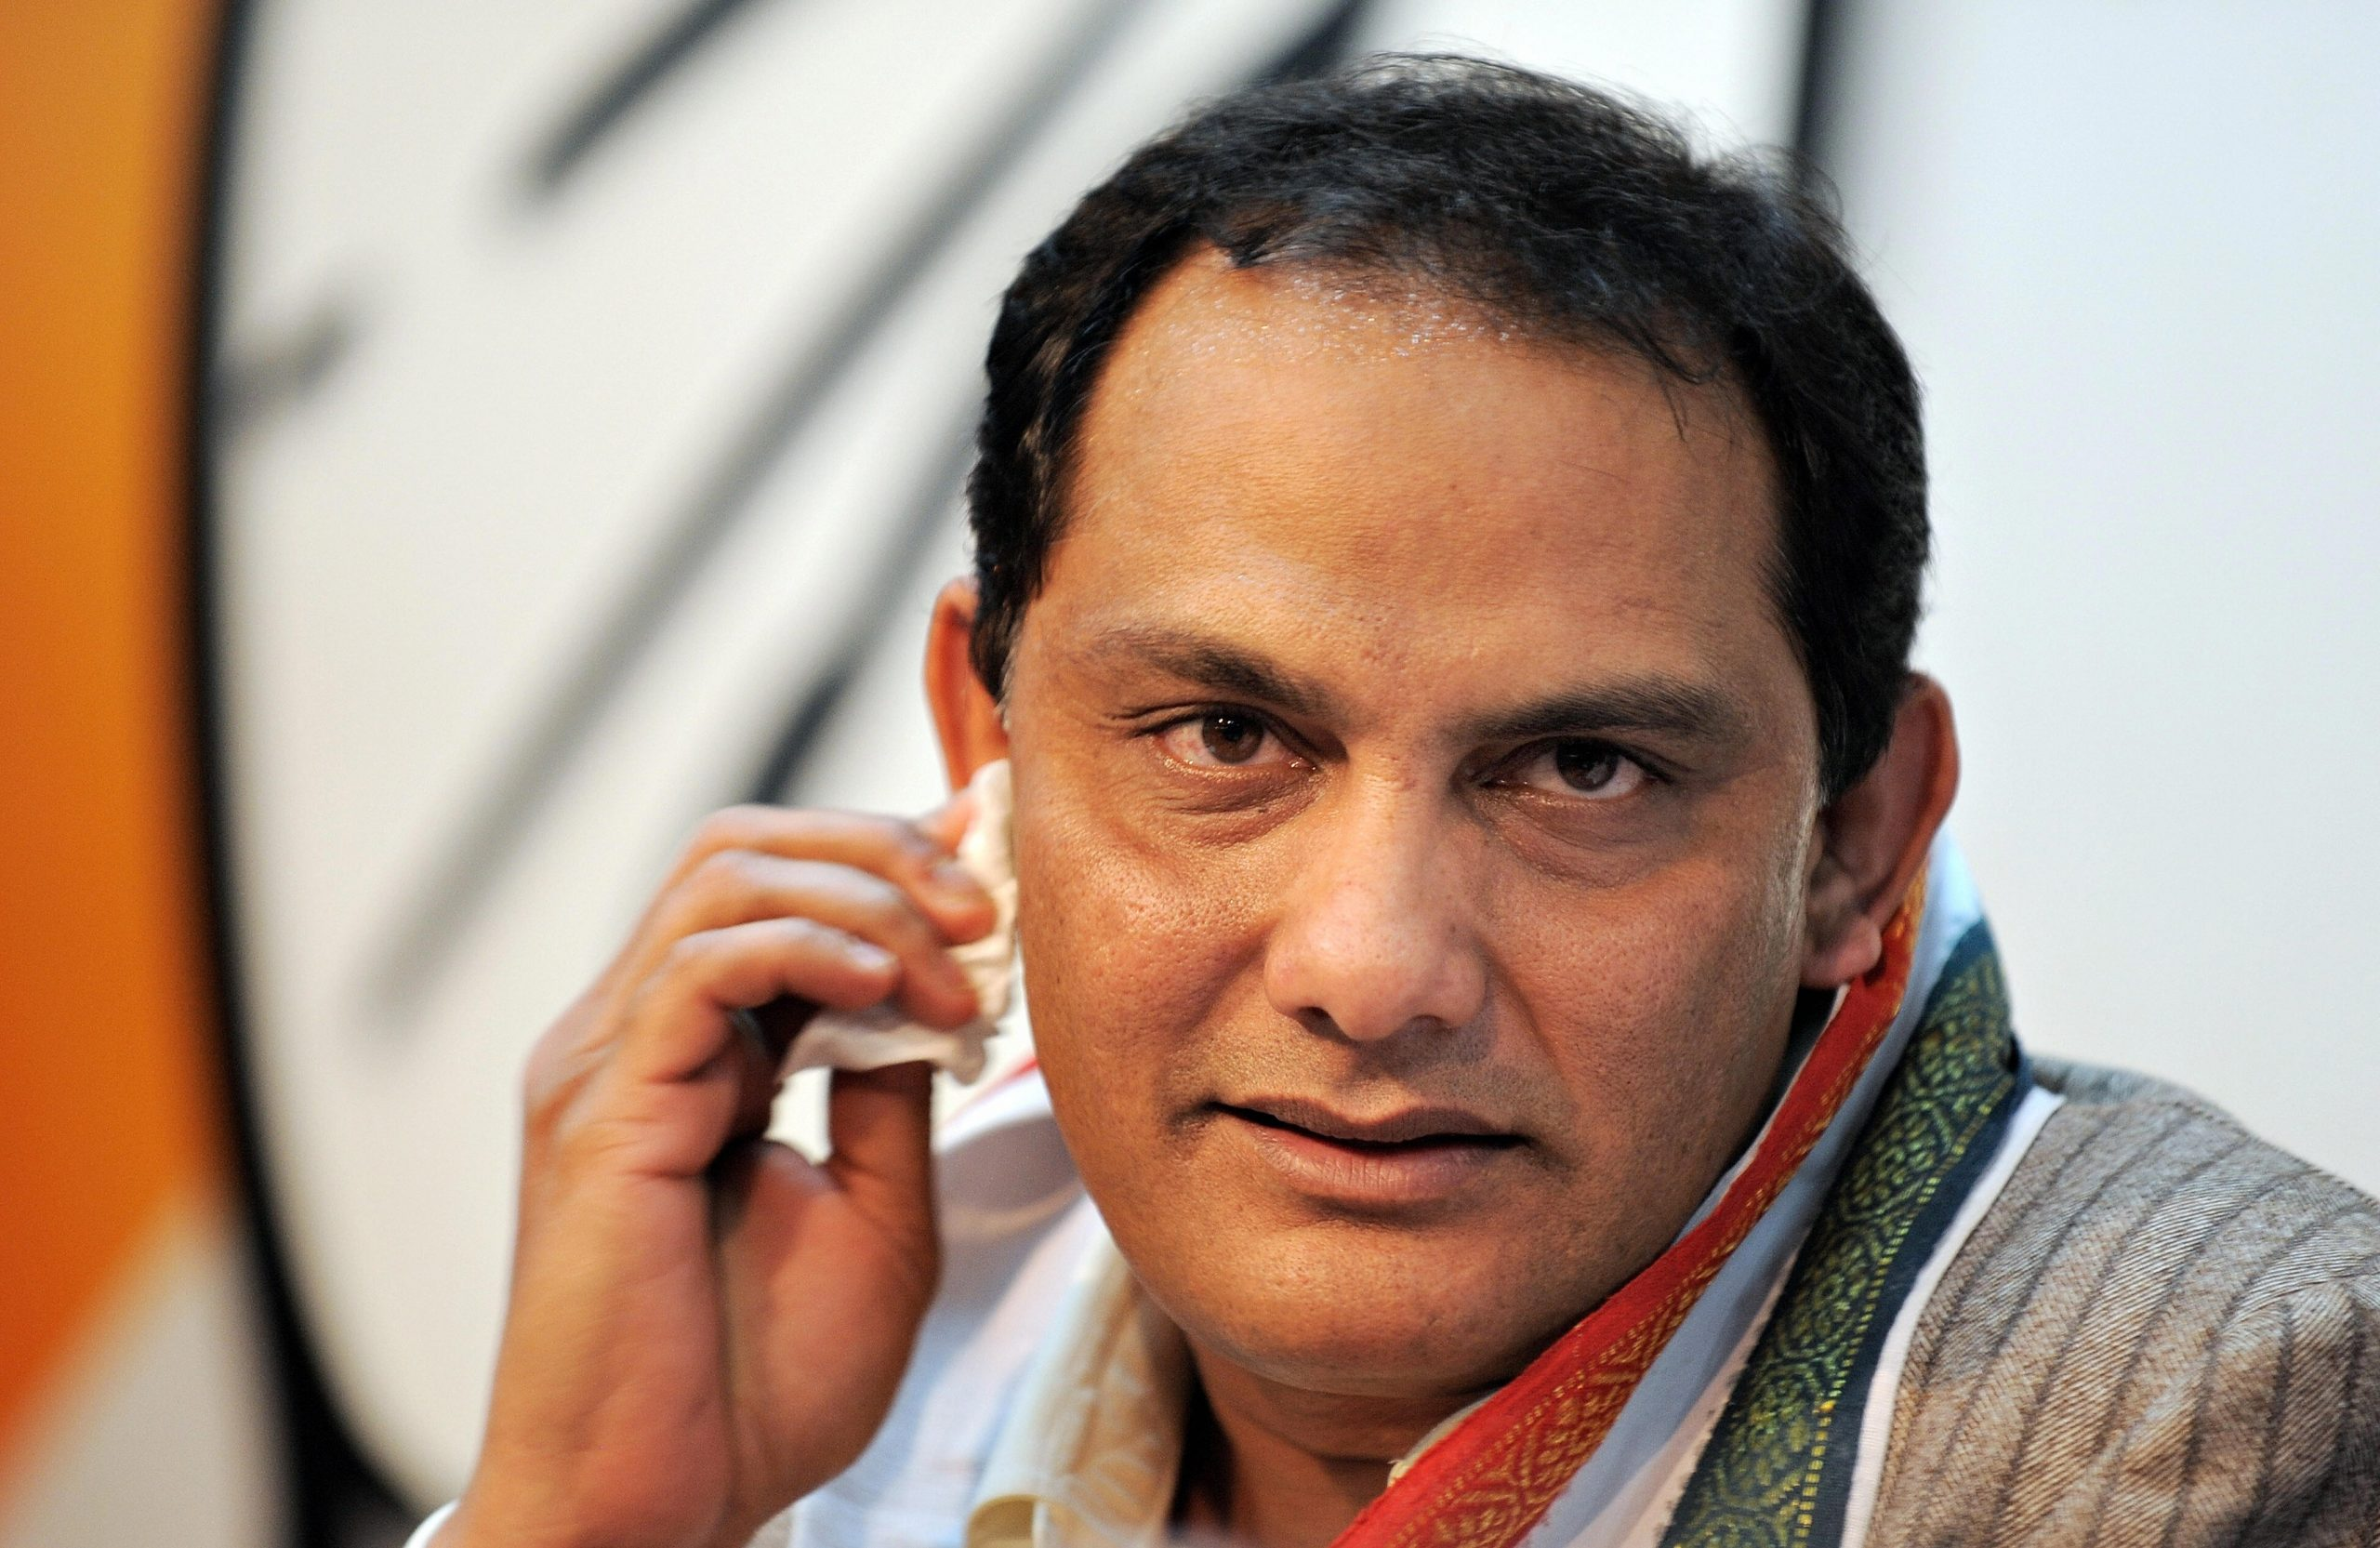 Former India cricket captain Mohammad Azharuddin wipes sweat from his face while addressing mediapersons at the Congress party headquarters in New Delhi on February 19, 2009. Former India cricket captain Mohammad Azharuddin, who was forced to quit the game after a match-fixing scandal, entered the country's turbulent political scene on February 19. Azharuddin, 46, was paraded for the media at the Congress headquarters in New Delhi after joining the ruling party ahead of upcoming parliamentary elections.   AFP PHOTO/ MANAN VATSYAYANA (Photo credit should read MANAN VATSYAYANA/AFP via Getty Images)